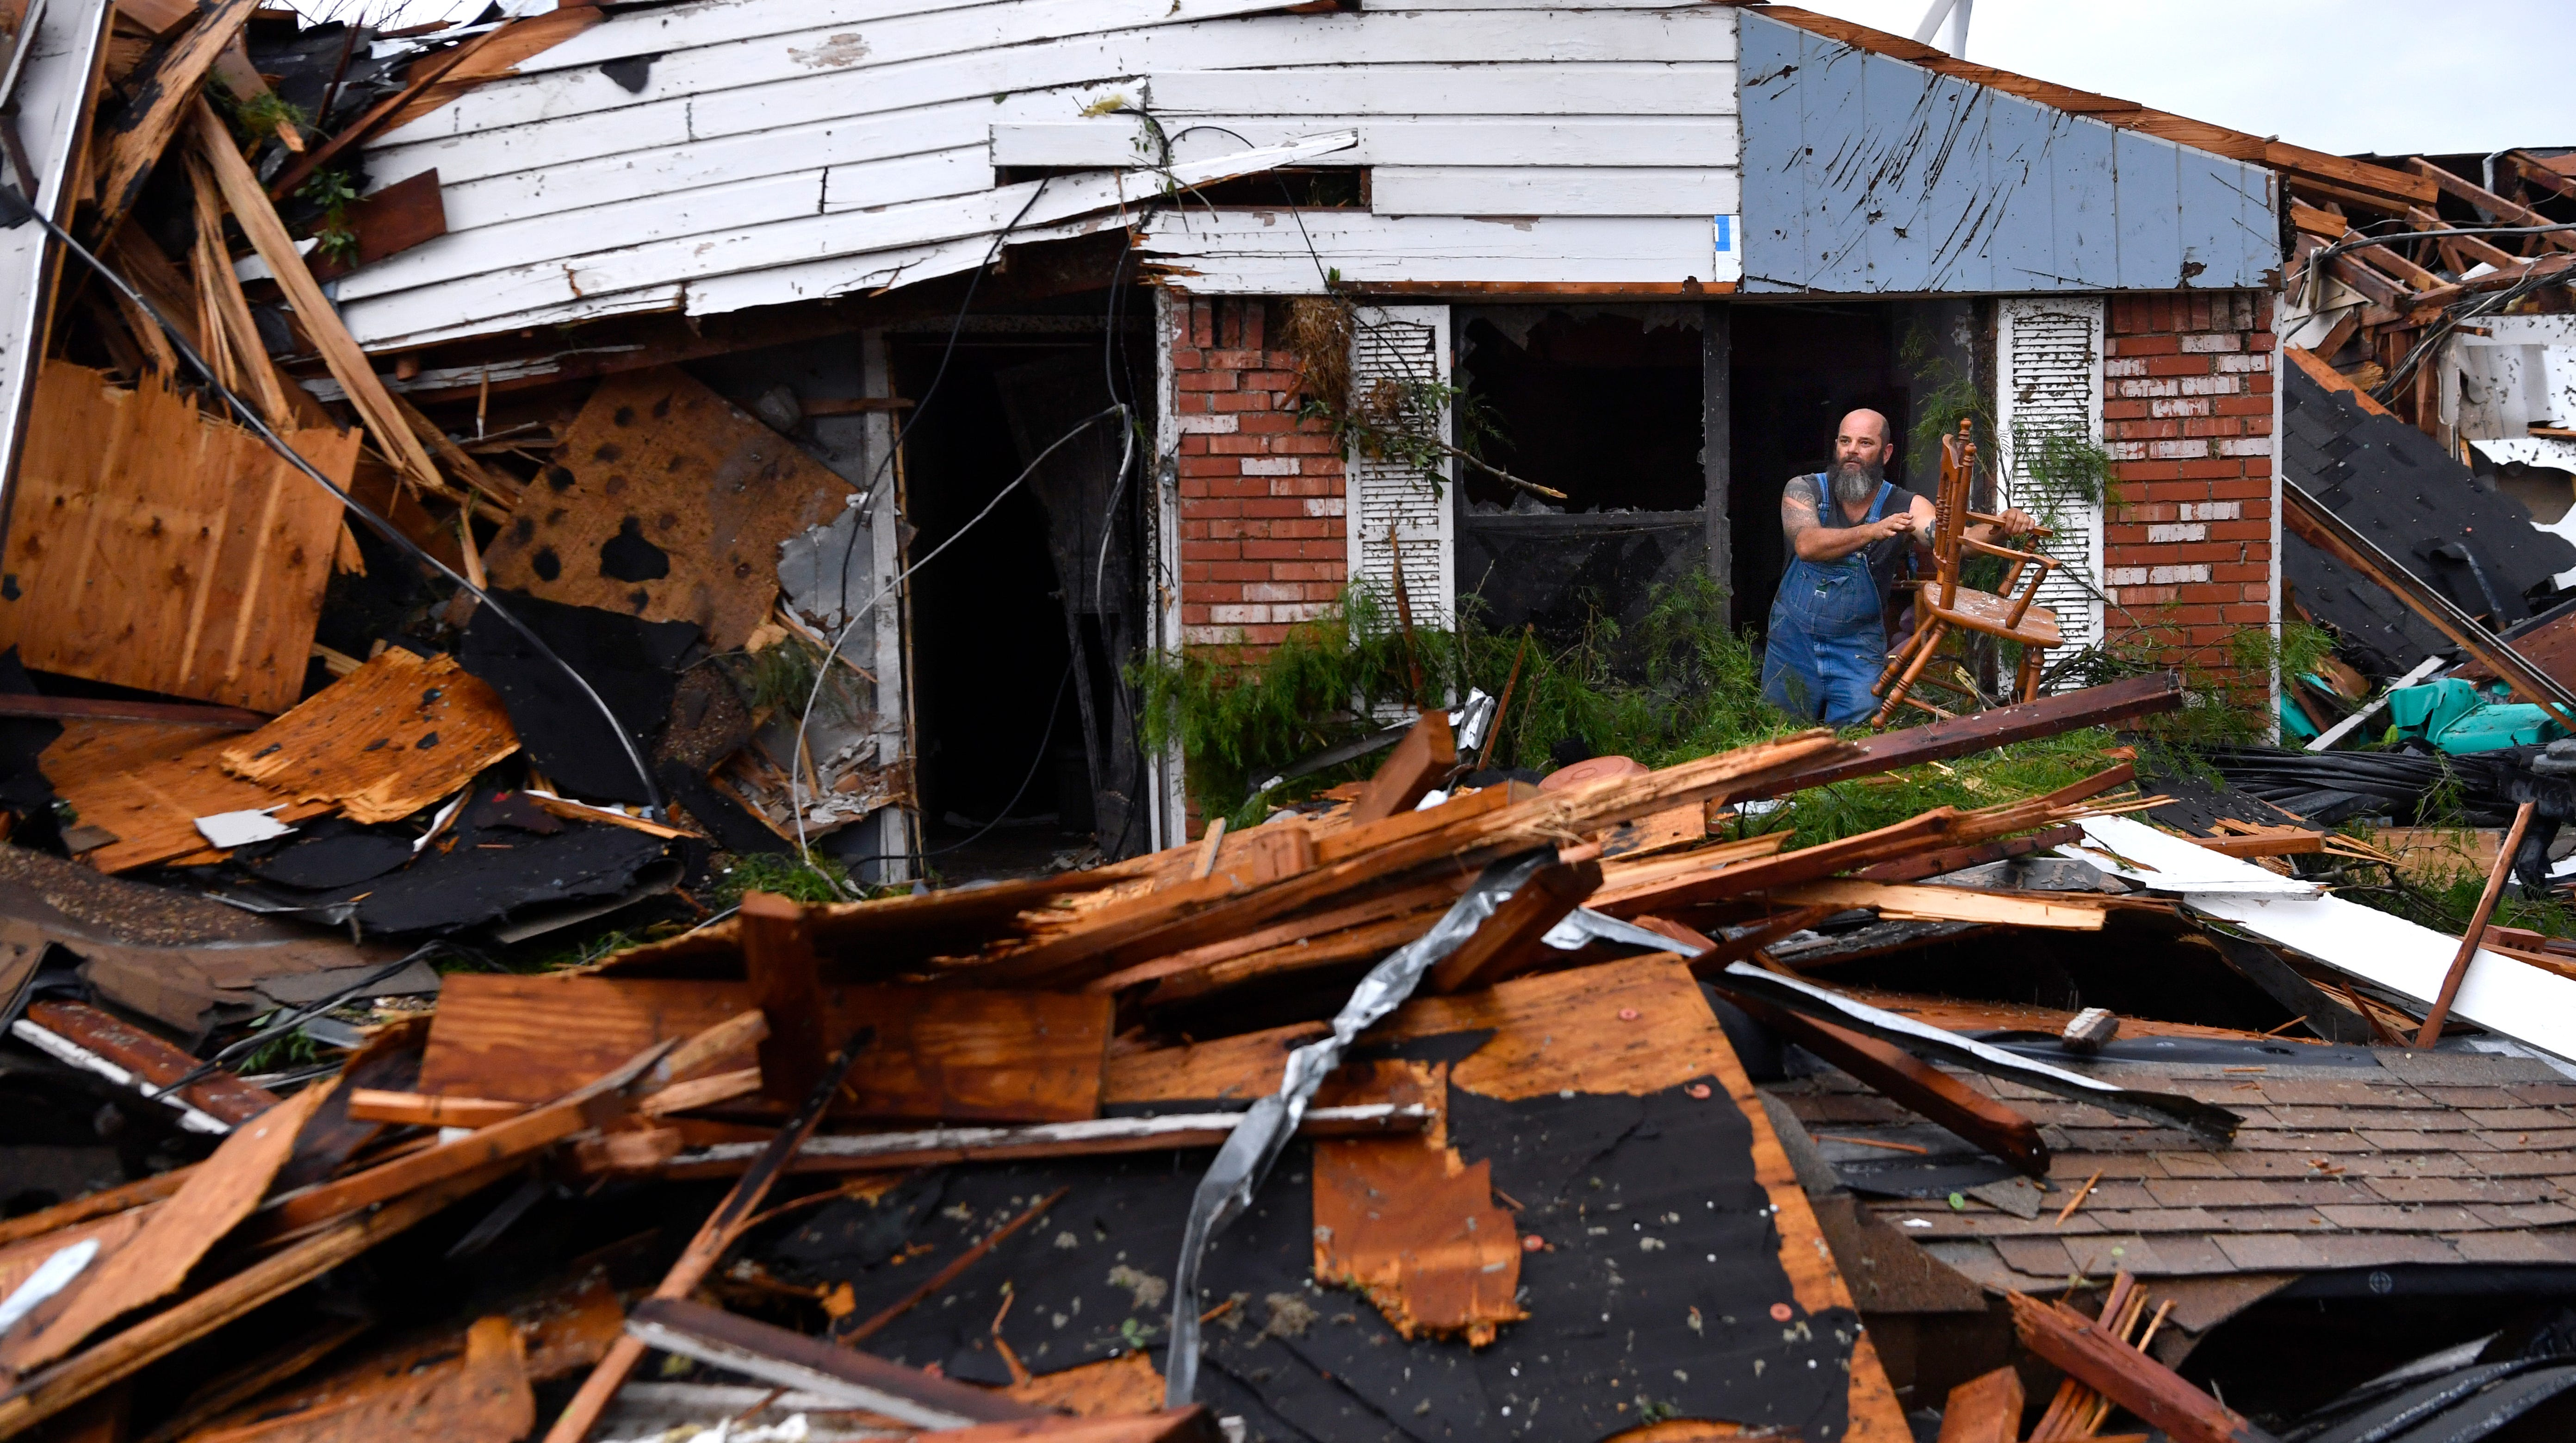 Wesley Mantooth lifts a wooden chair out a window of his father Robert's home after a possible tornado in Abilene on Saturday May 18, 2019.